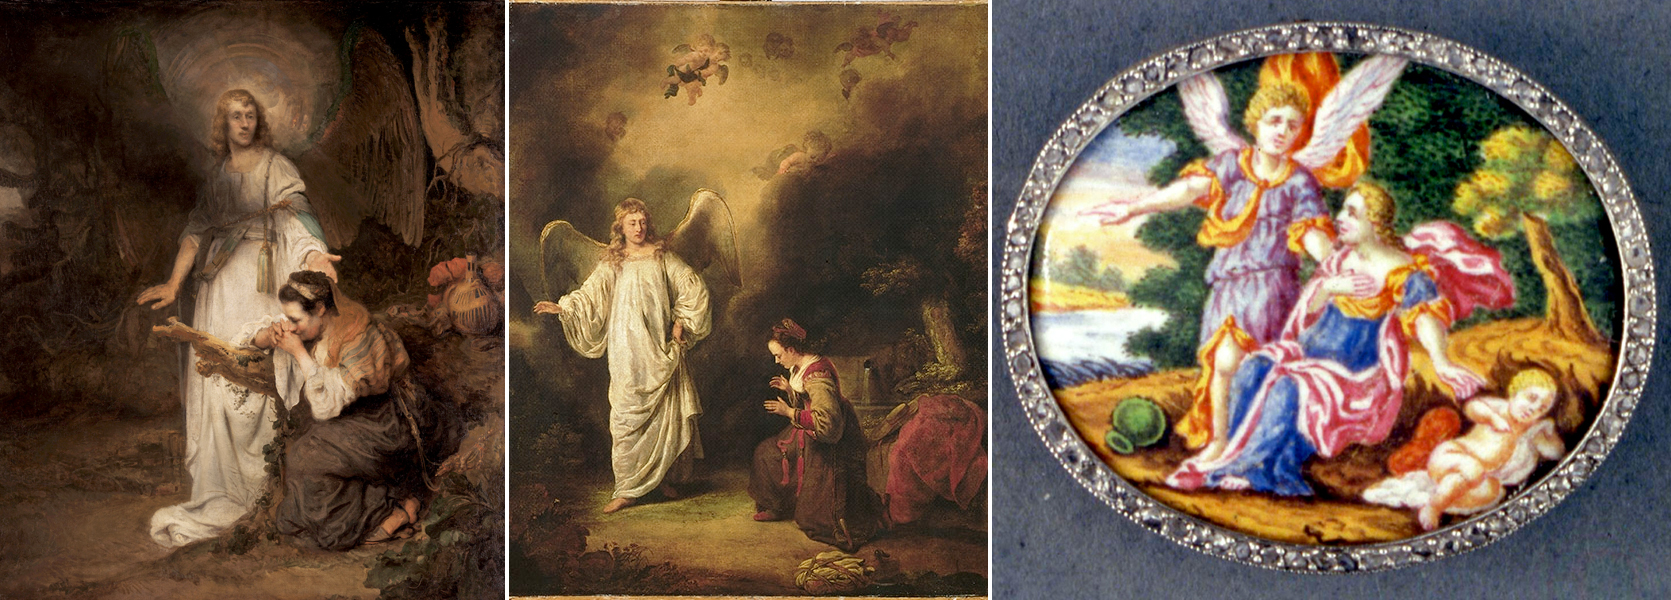 Hagar and Ishmael in the Wilderness with an Angel